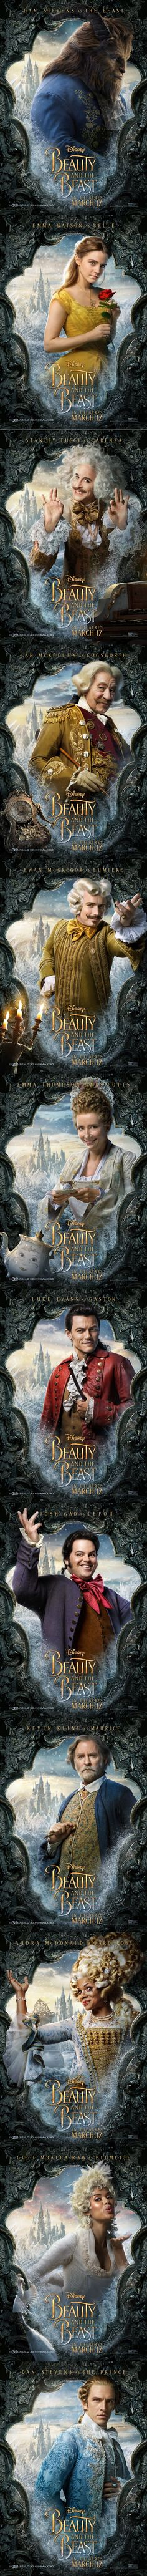 New 'Beauty and the Beast' character posters!